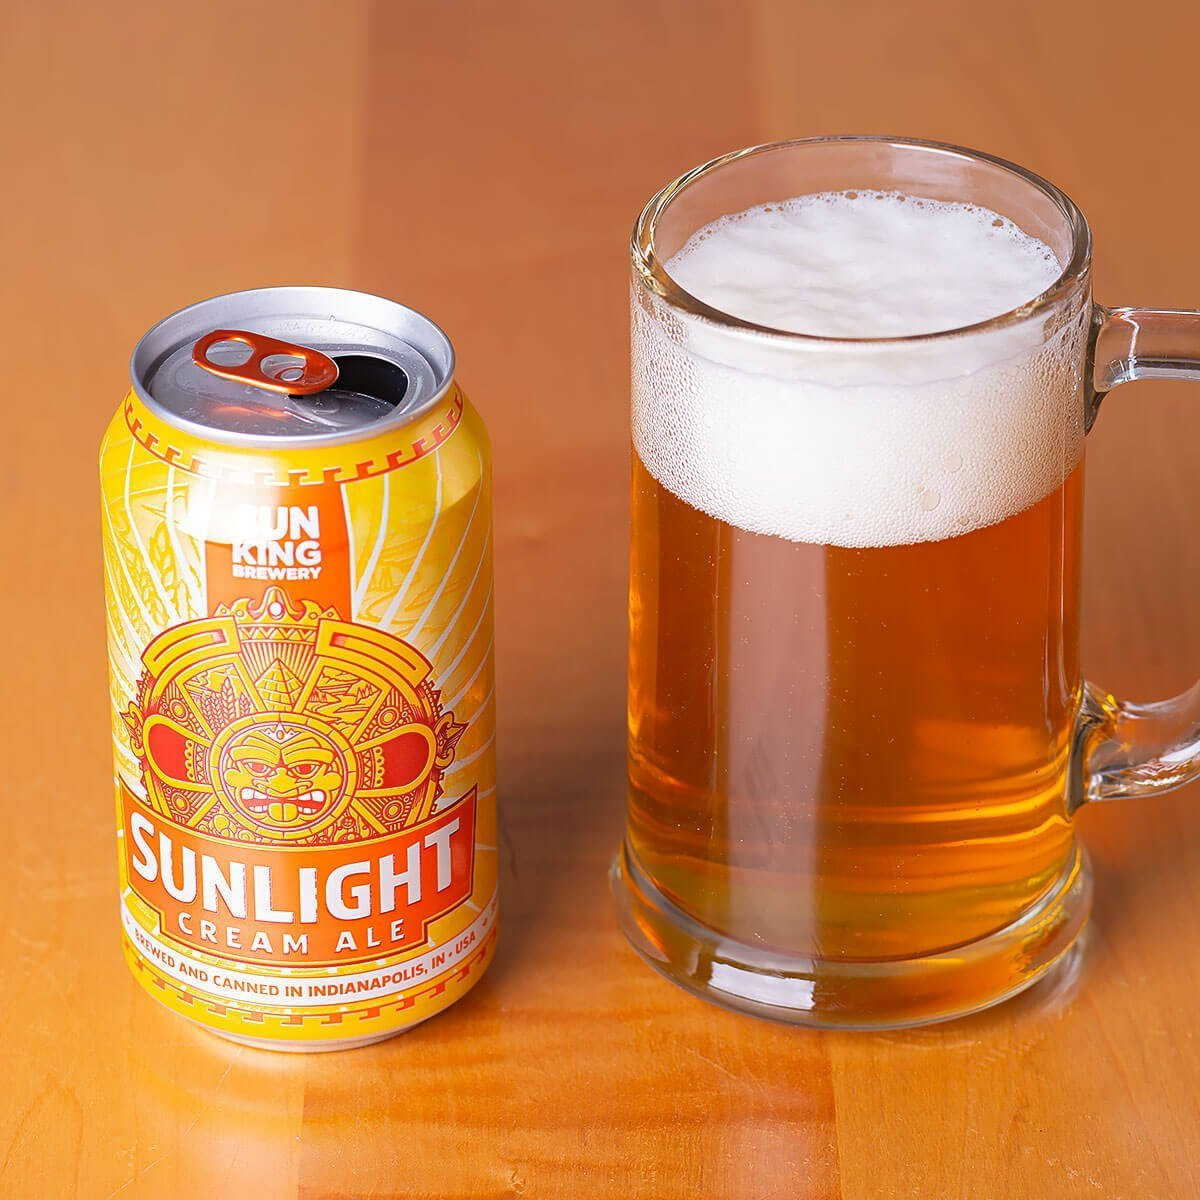 The award-winning Sunlight Cream Ale by Sun King Brewery is a light, please-all, easy drinker of a beer.